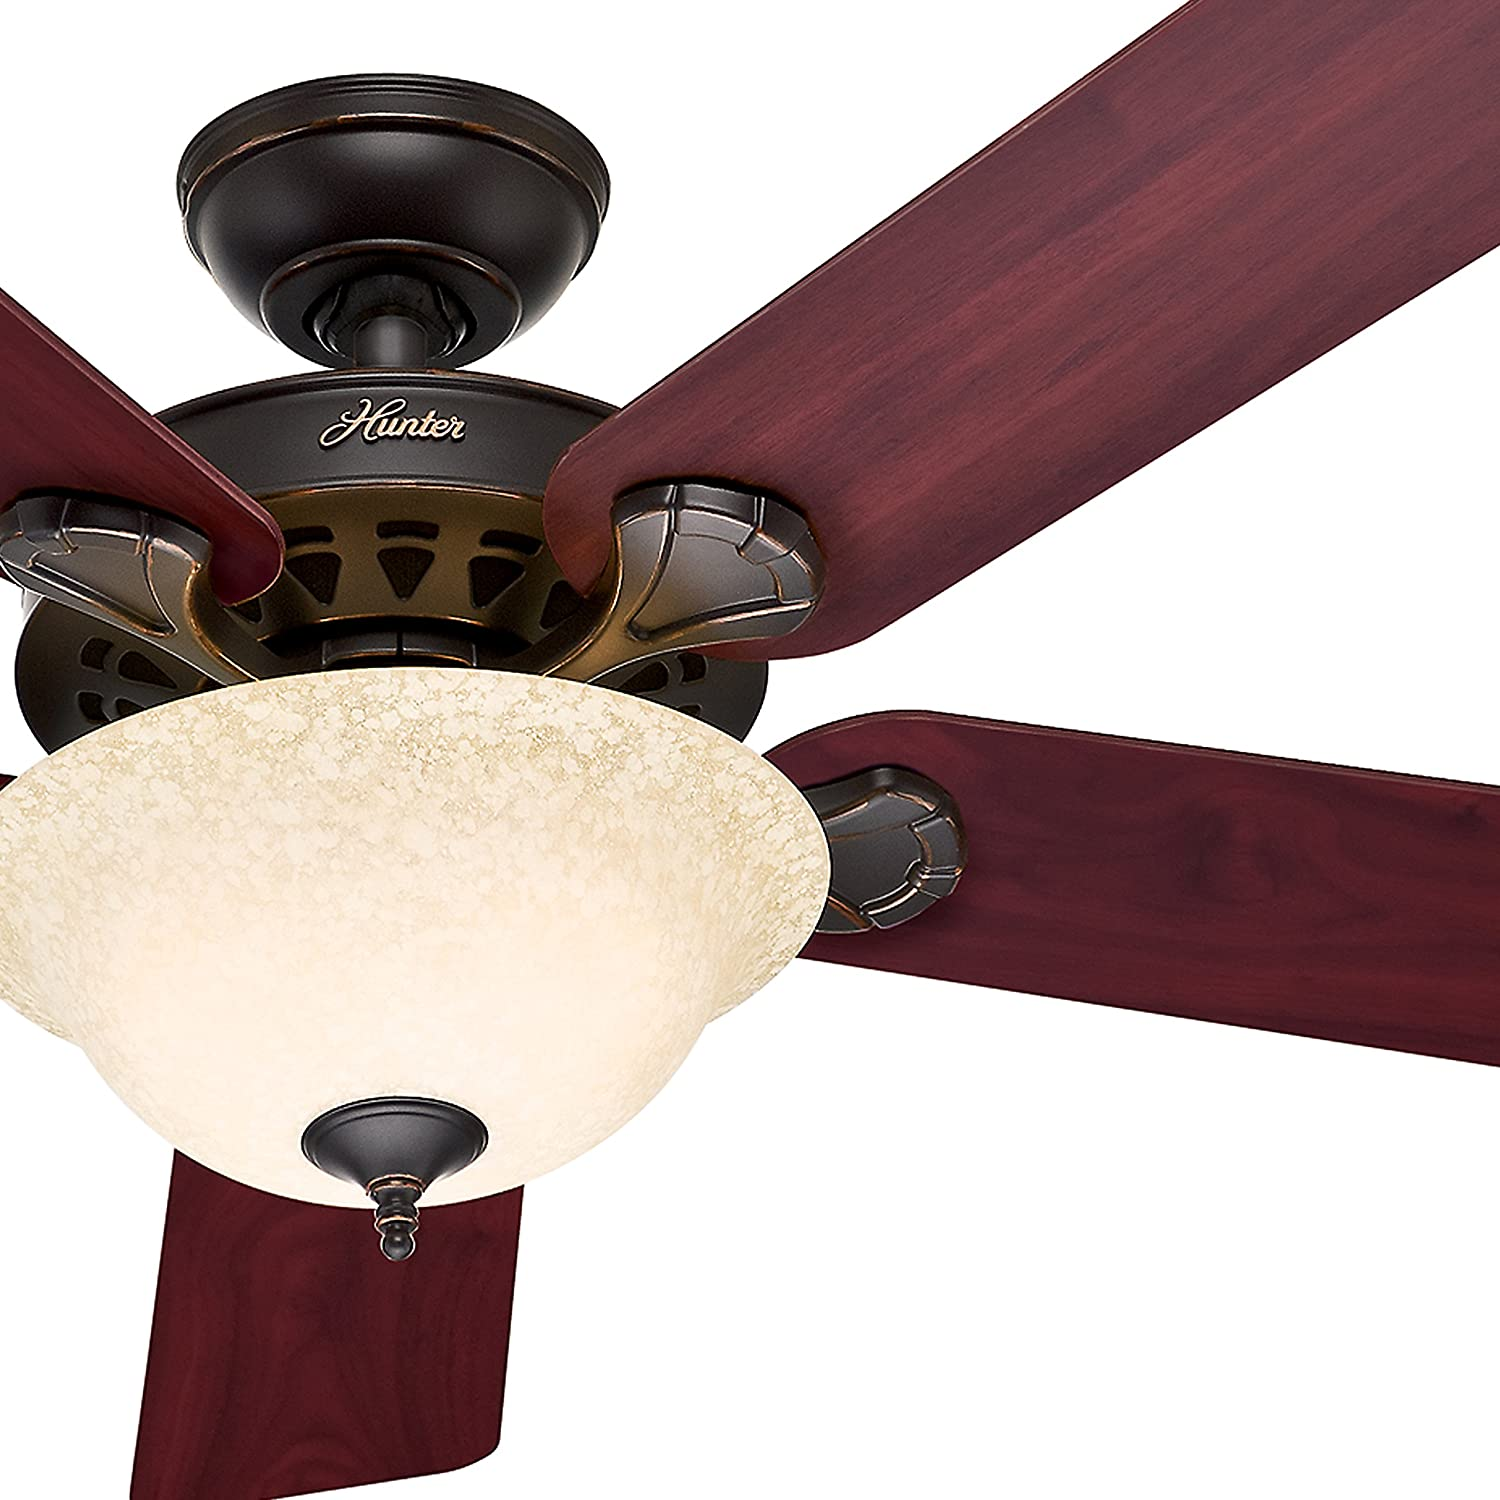 Hunter fan 52 traditional ceiling fan onyx bengal bronze finish hunter fan 52 traditional ceiling fan onyx bengal bronze finish remote control included certified refurbished amazon aloadofball Image collections